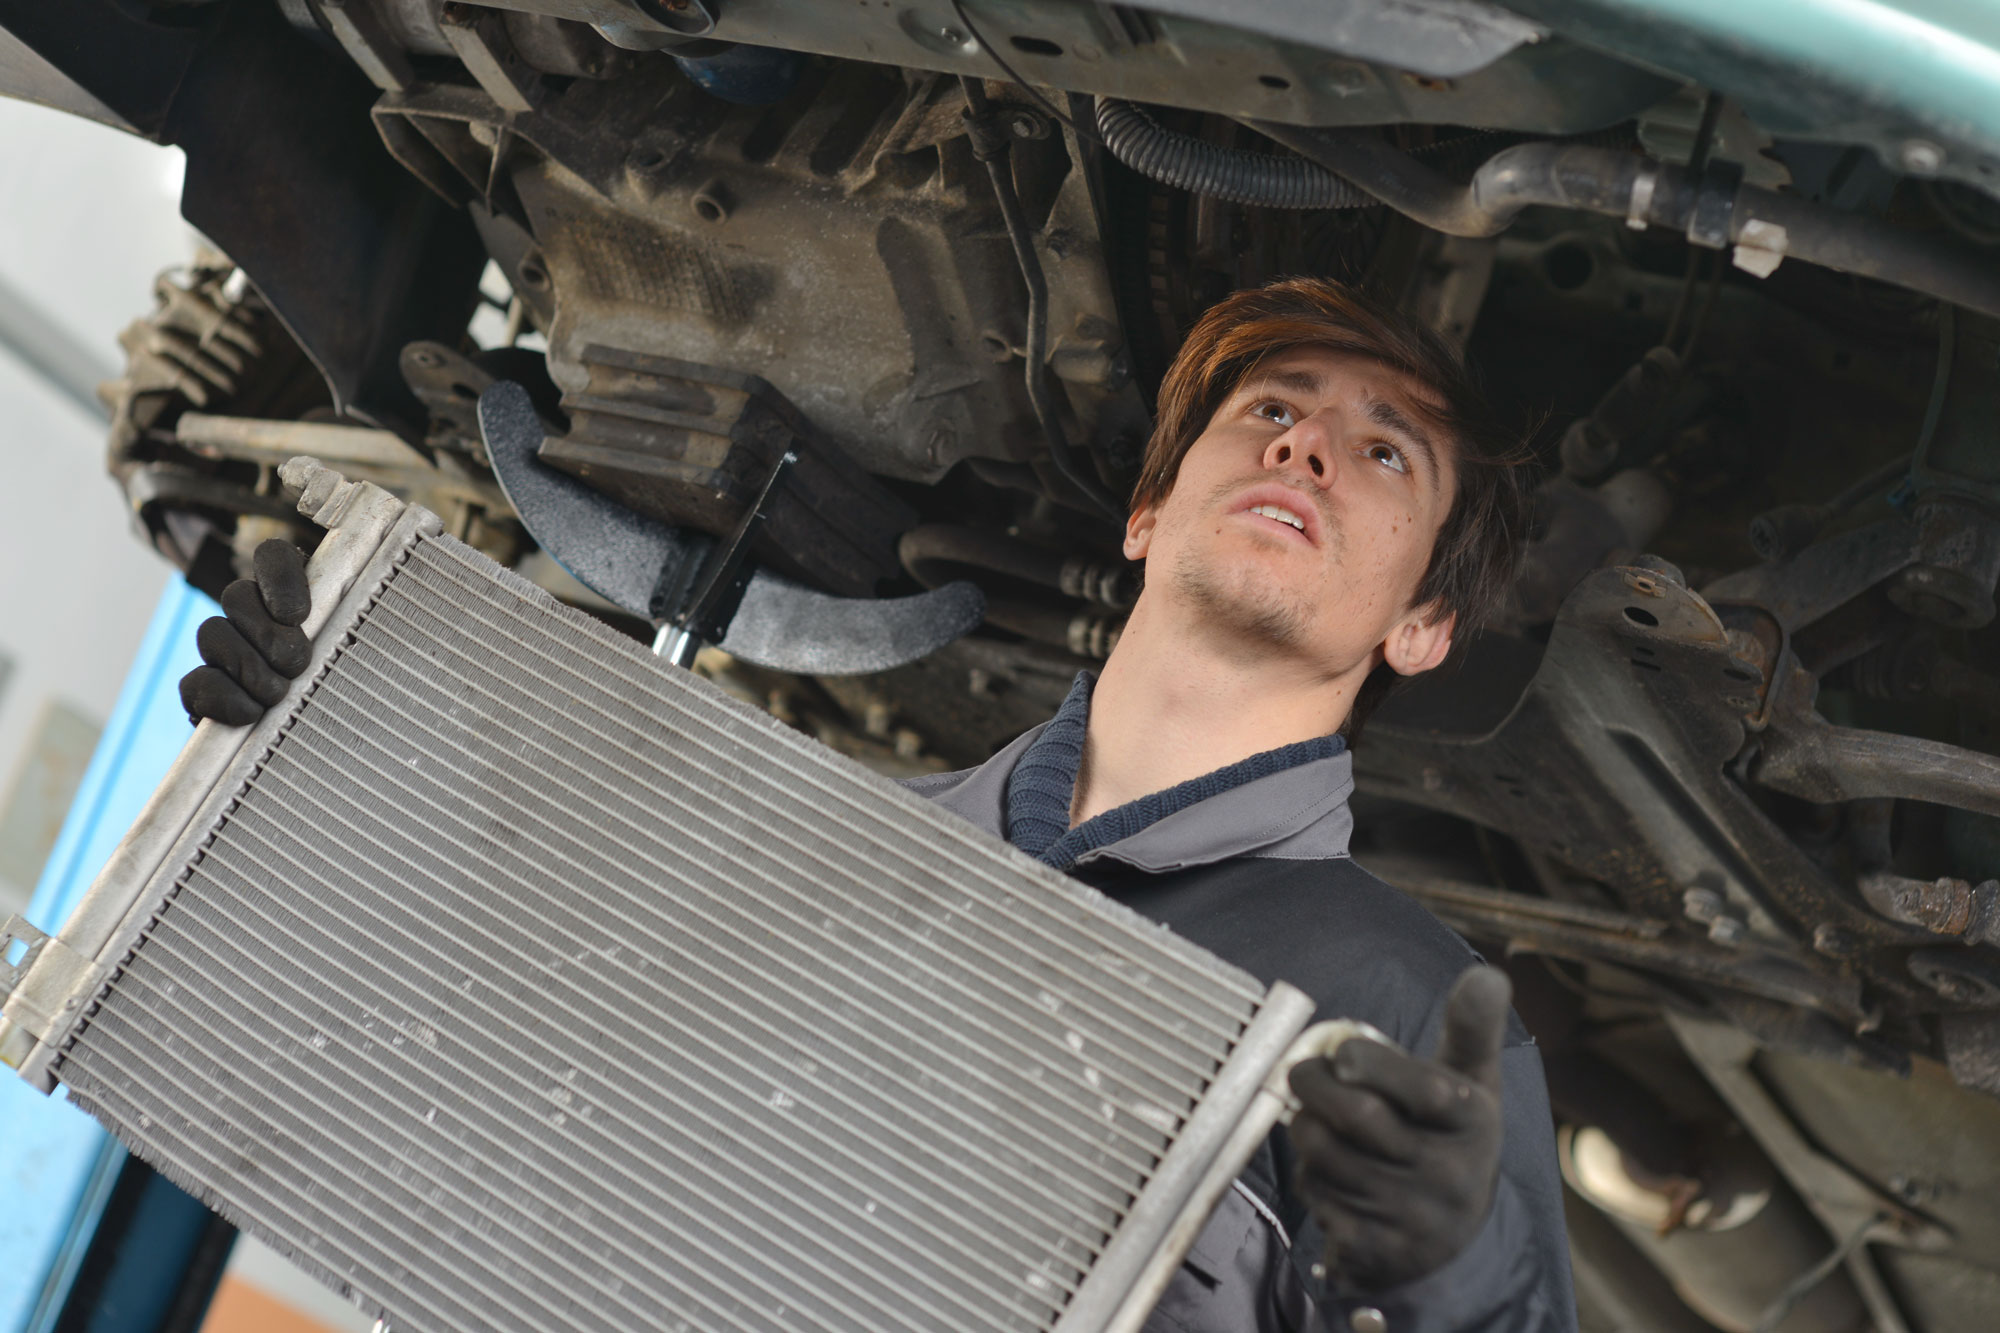 Welcome to the home of Red Devil | Radiator & Air Conditioning Services